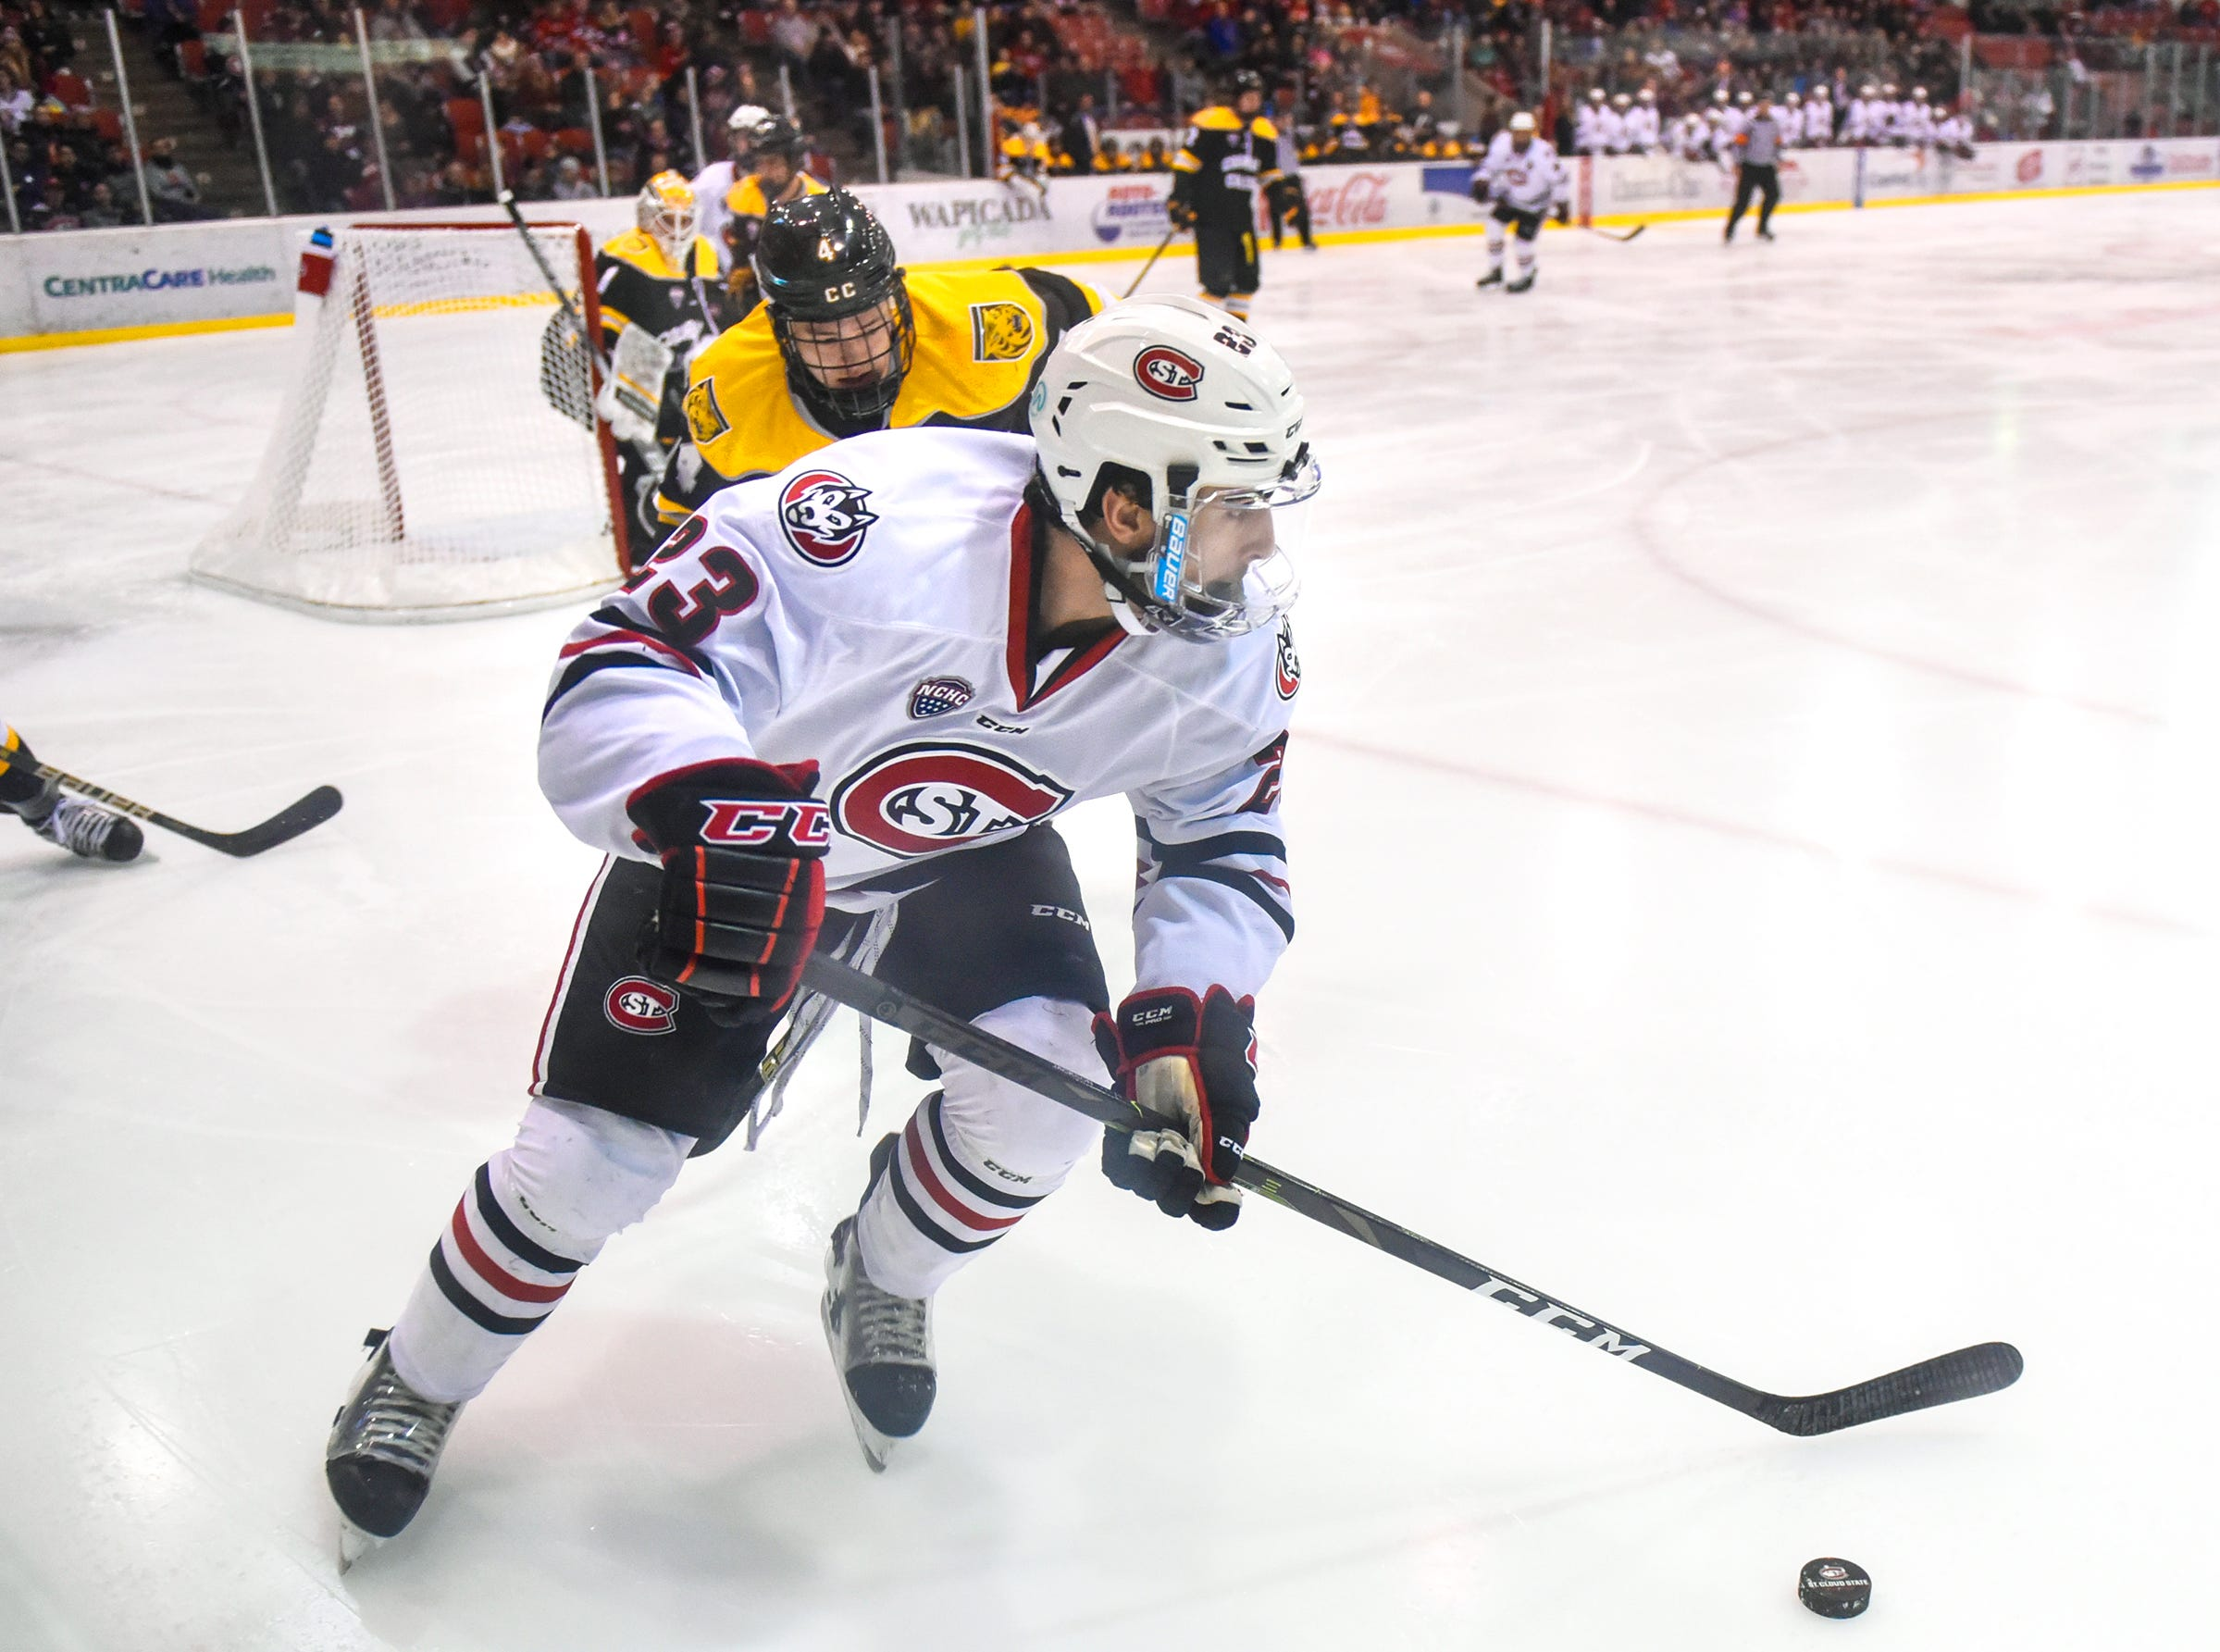 St. Cloud State's Robby Jackson works with the puck near the Colorado College goal during the first period of the Friday, Feb. 8, game at the Herb Brooks National Hockey Center in St. Cloud.